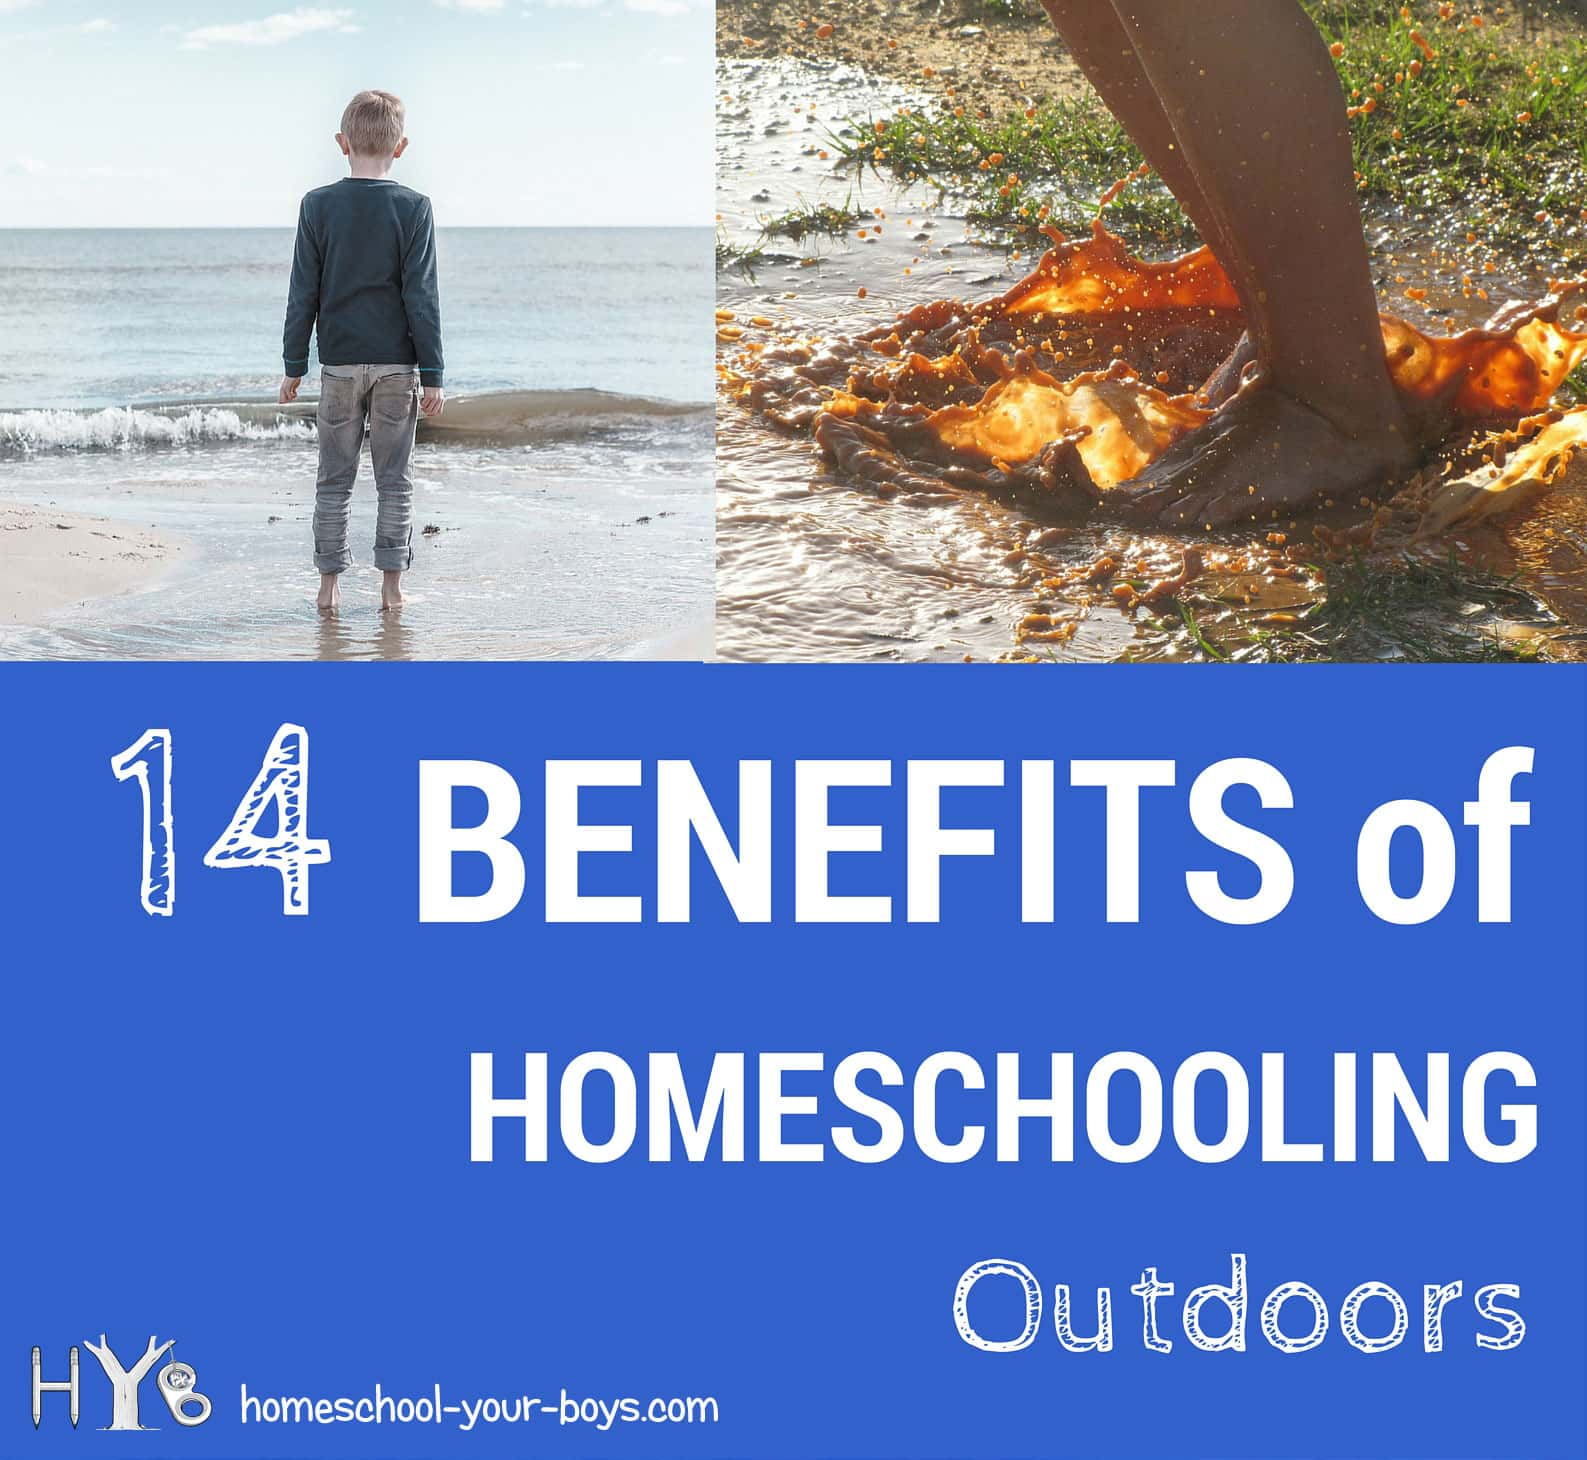 14 Benefits of Homeschooling Outdoors